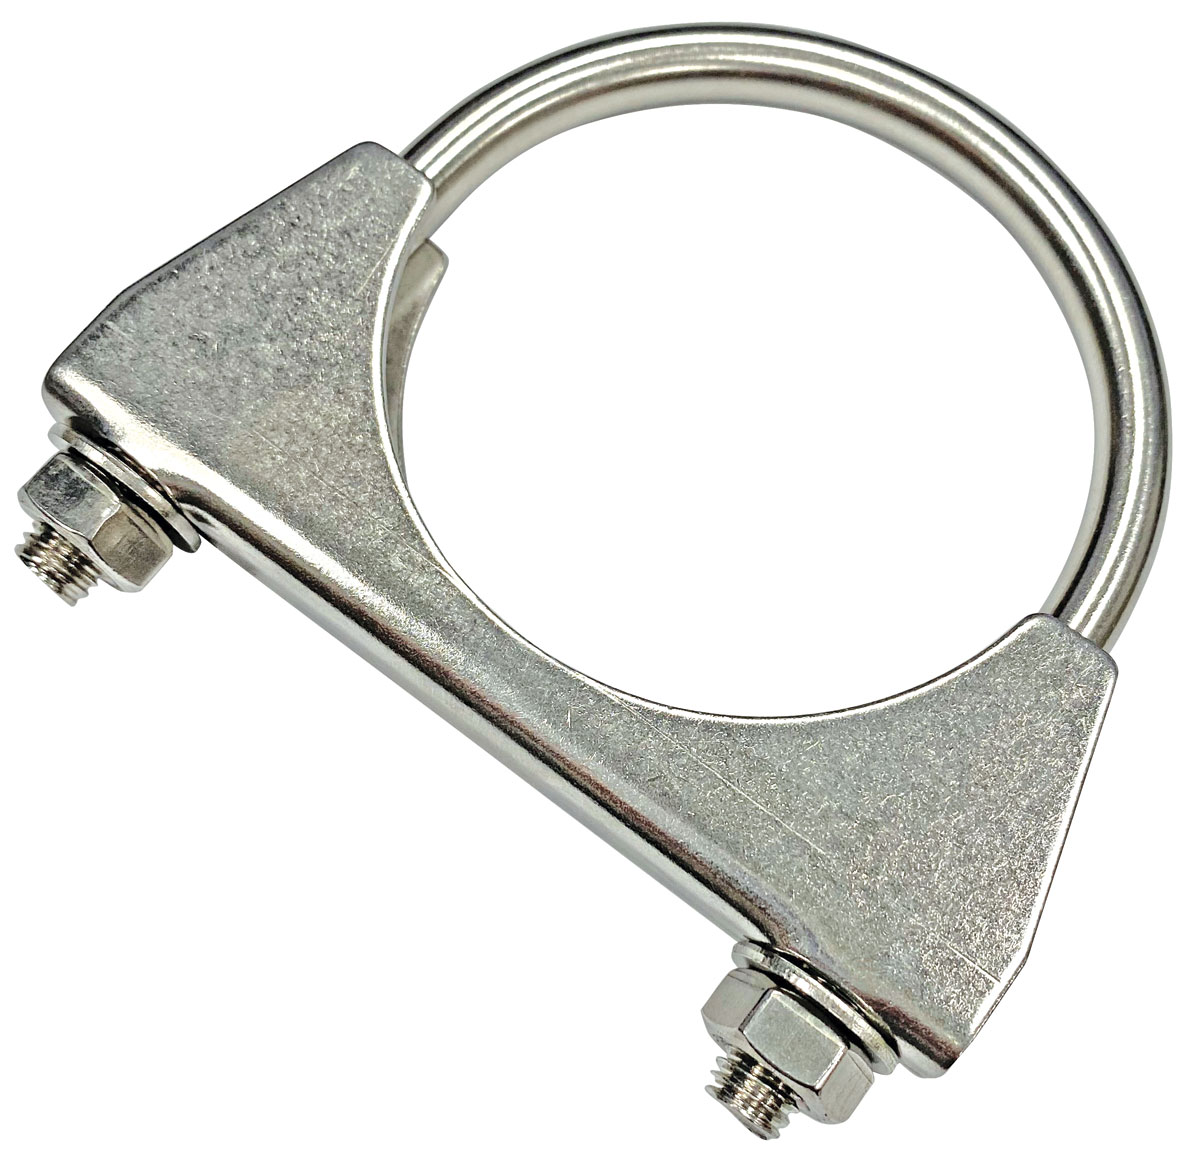 Photo of Exhaust Clamp, Stainless Steel 2""